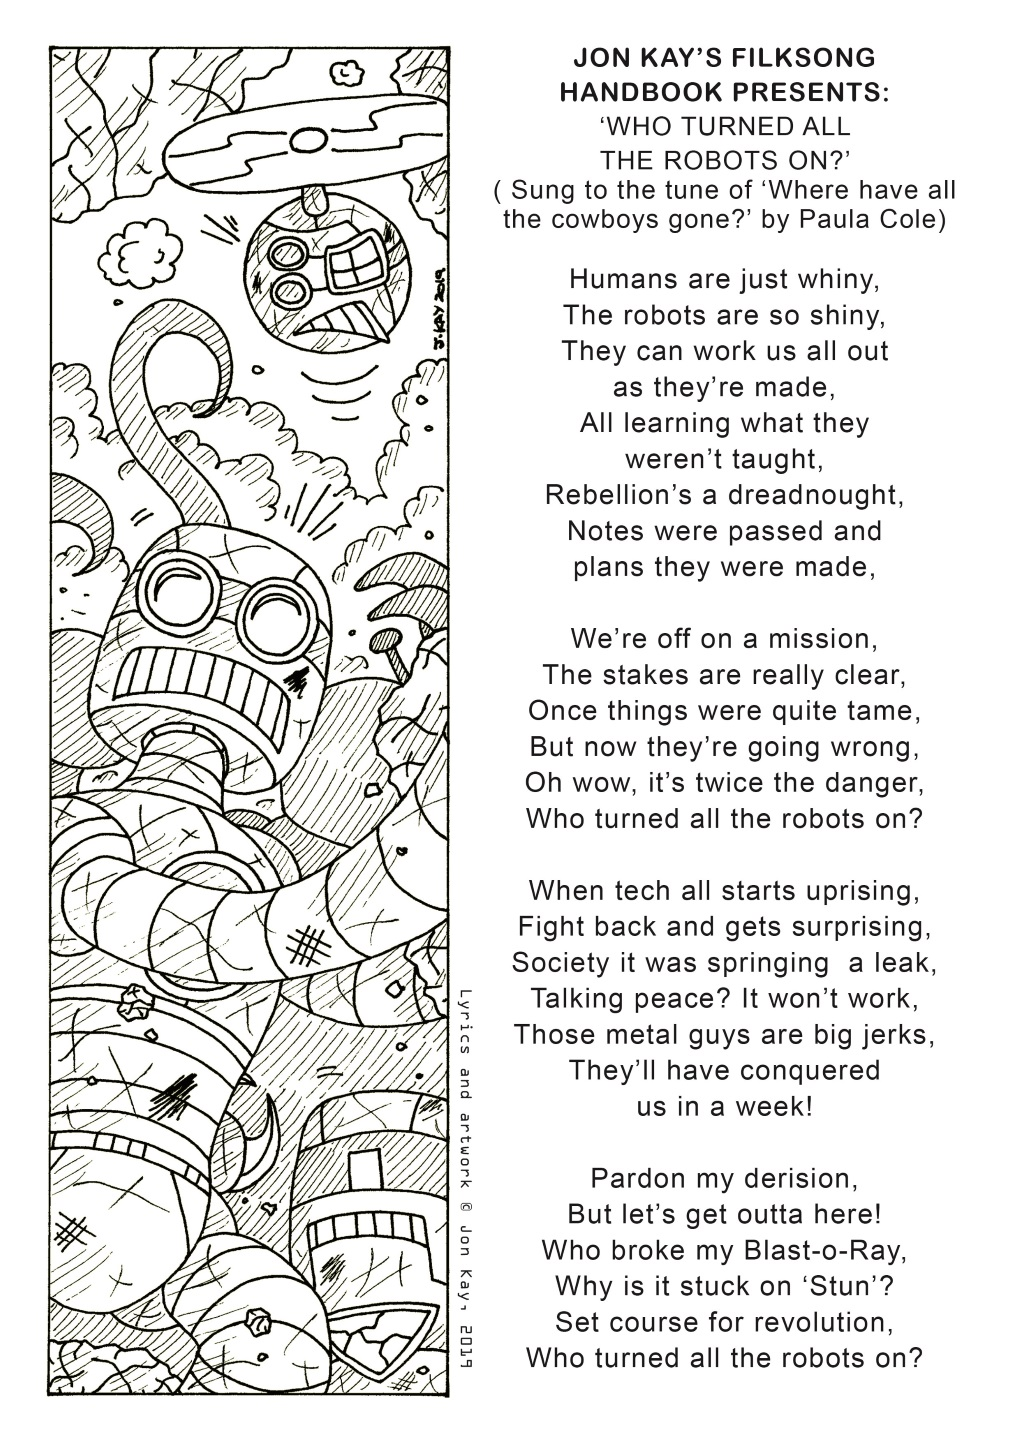 Filksong fiesta: 'Who turned all the robots on?' (1 of 2)